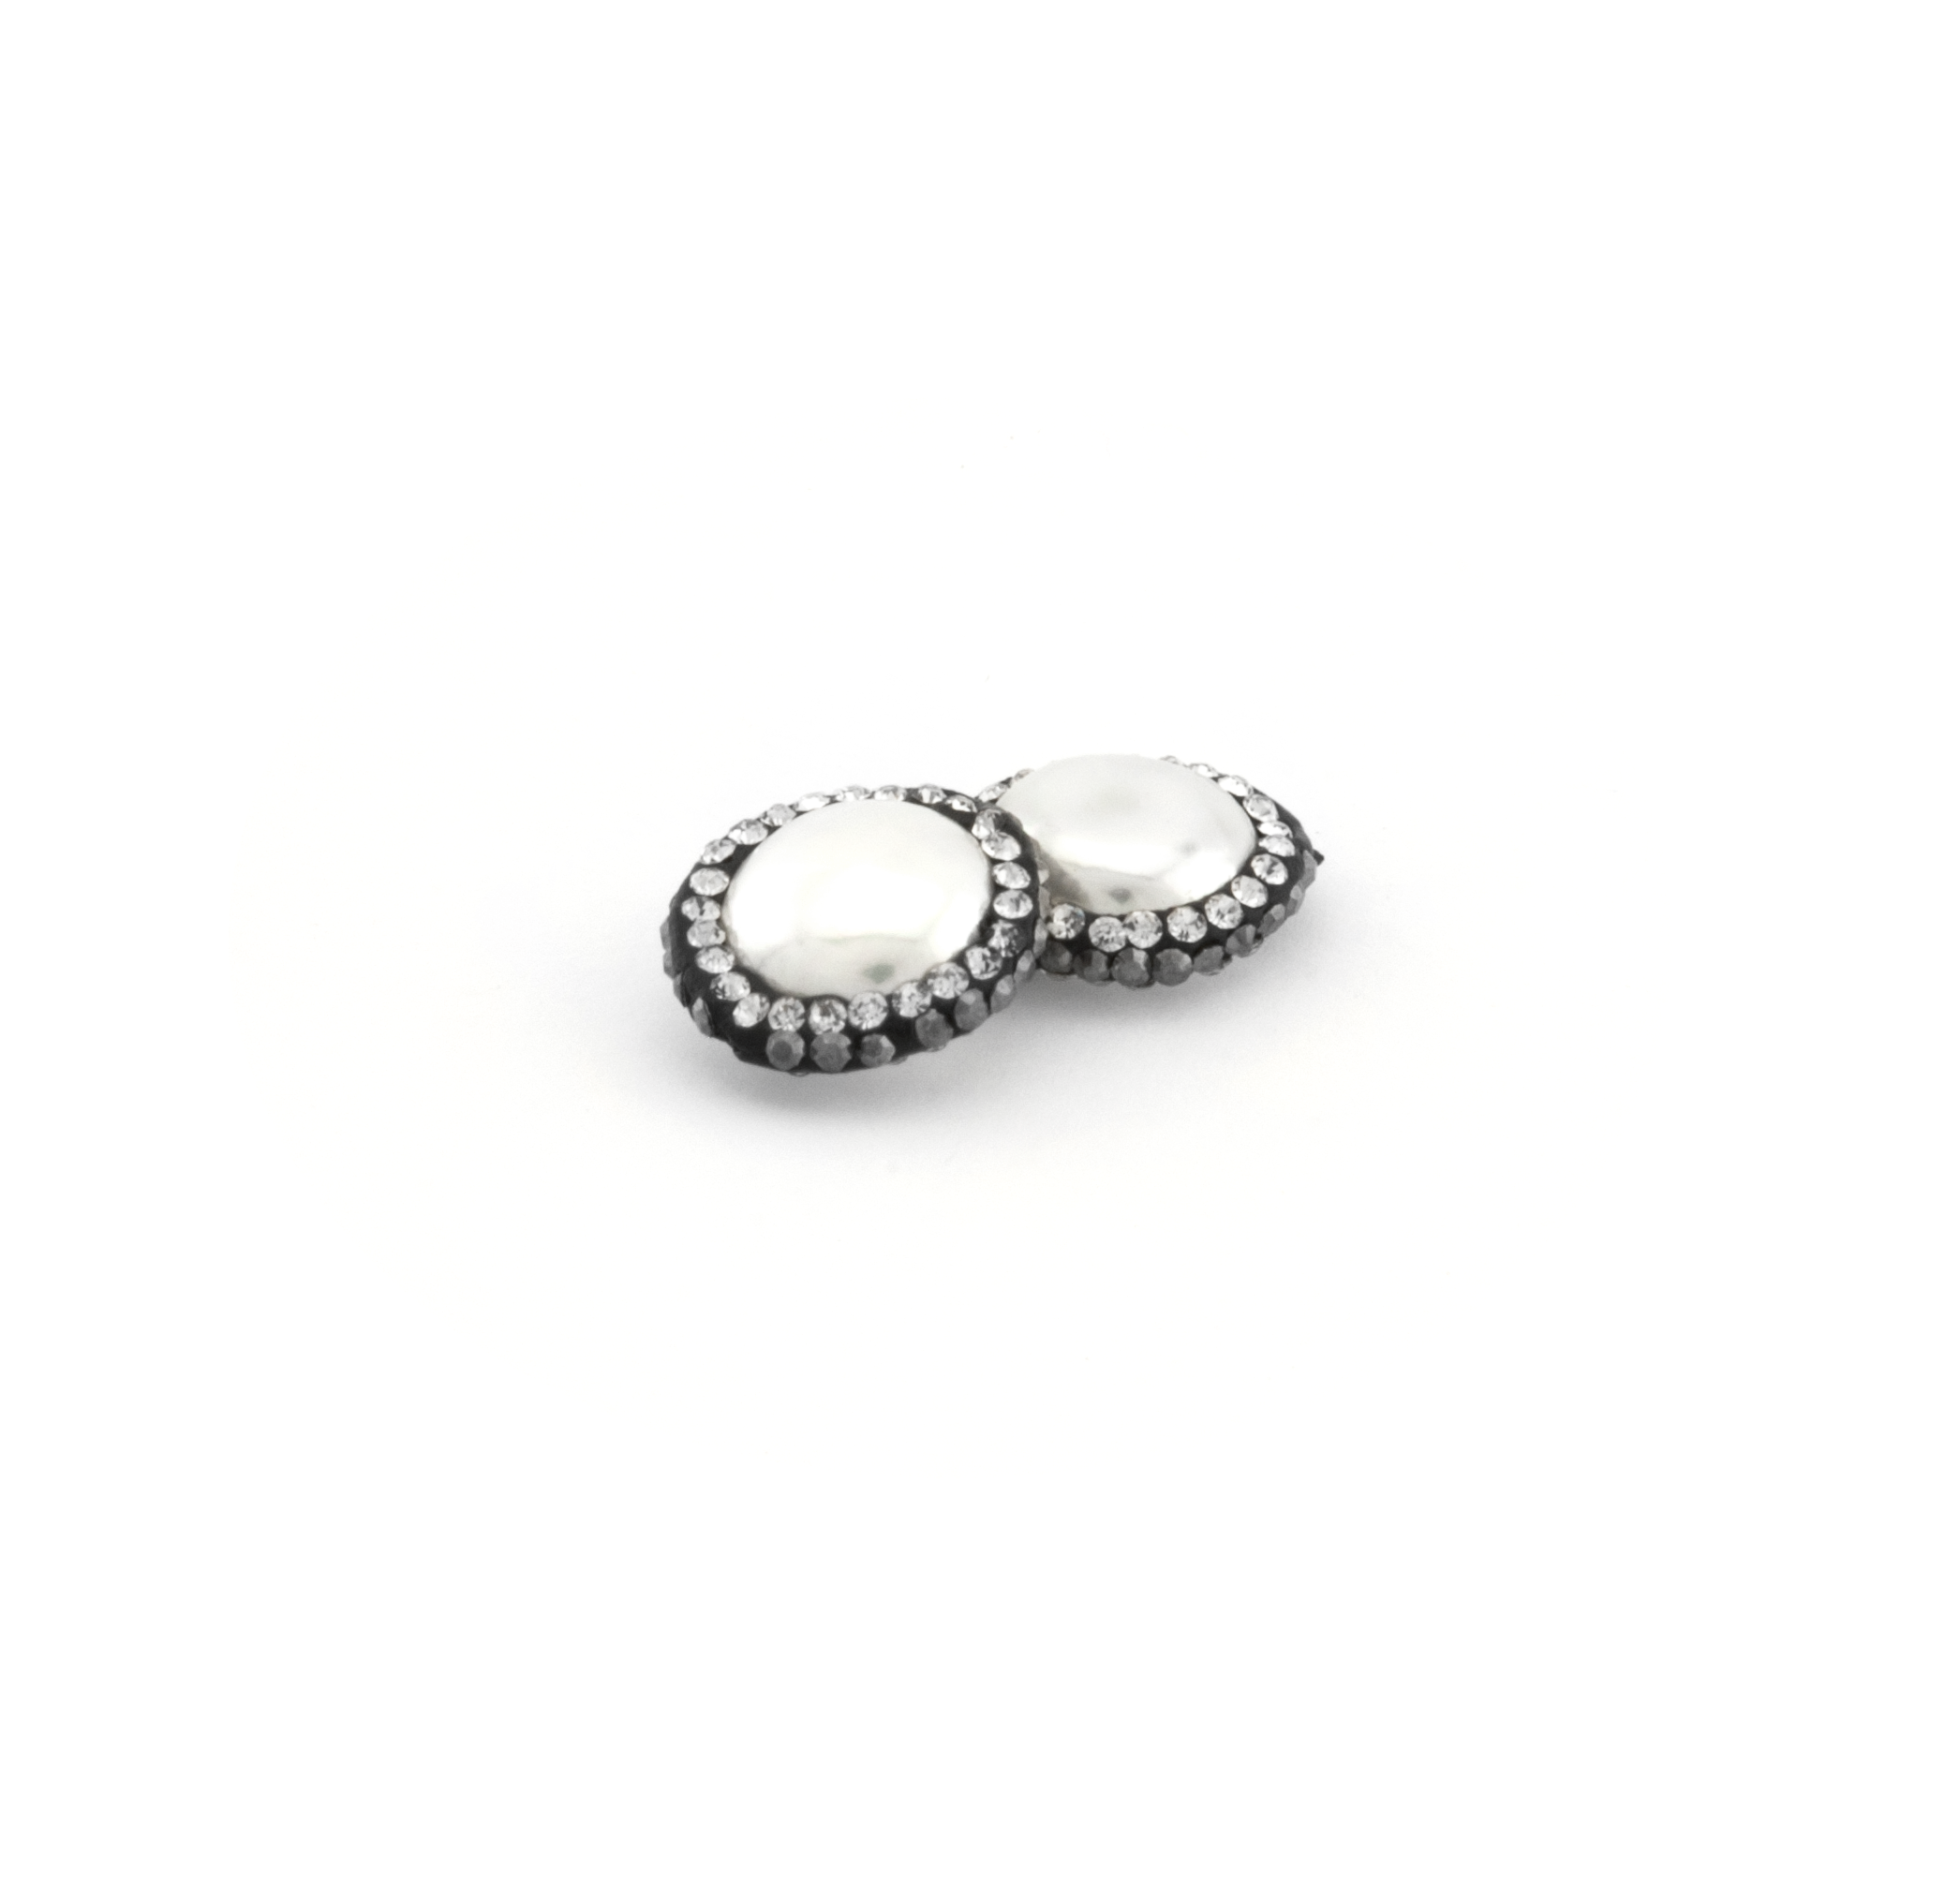 FRESH WATER PEARL WITH STRASS 17mm